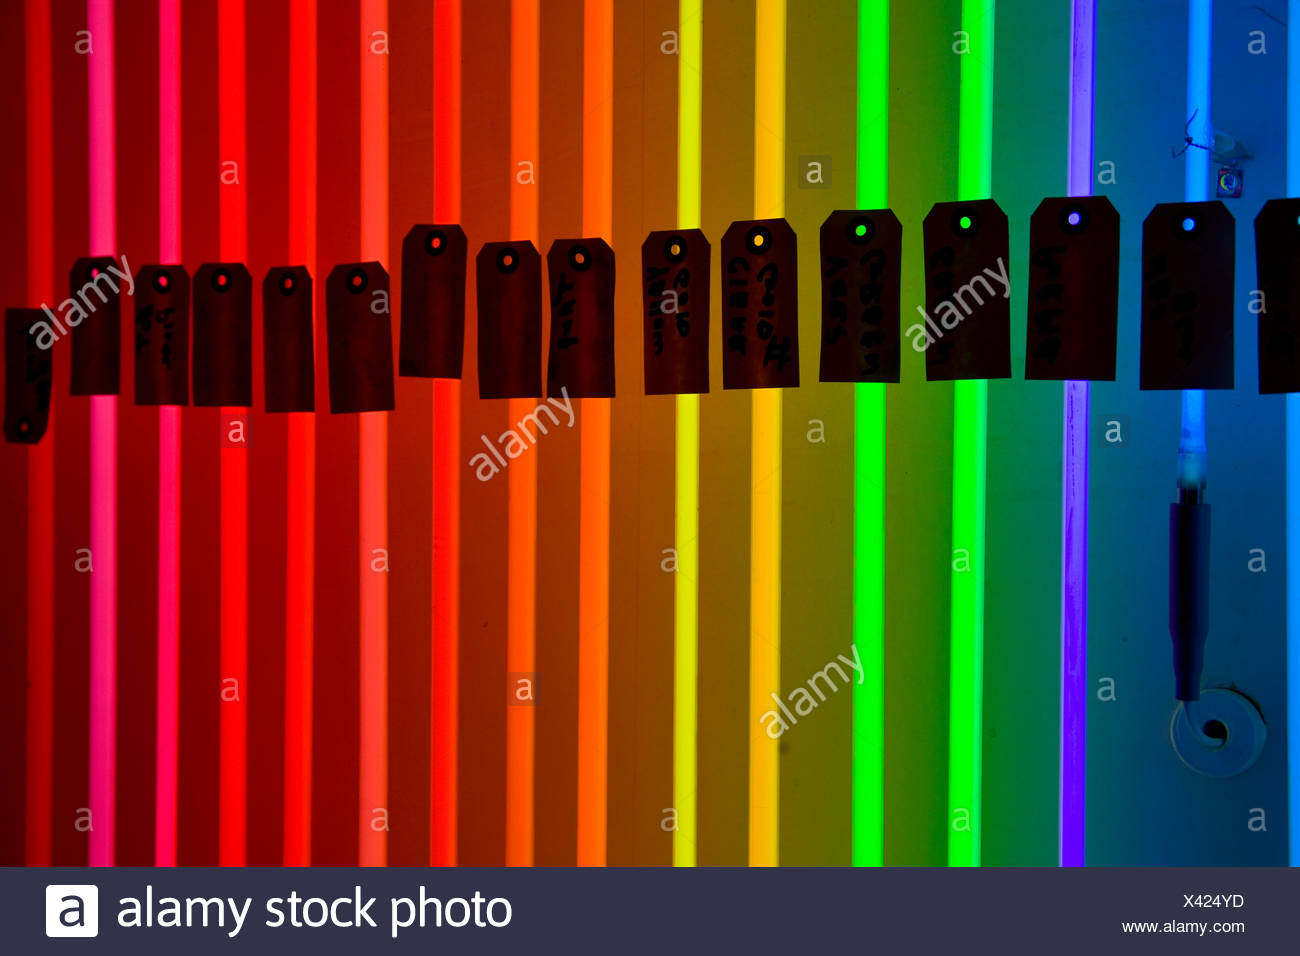 A glowing color spectrum of neon sample tubes at 'Desert Neon'. - Stock Image